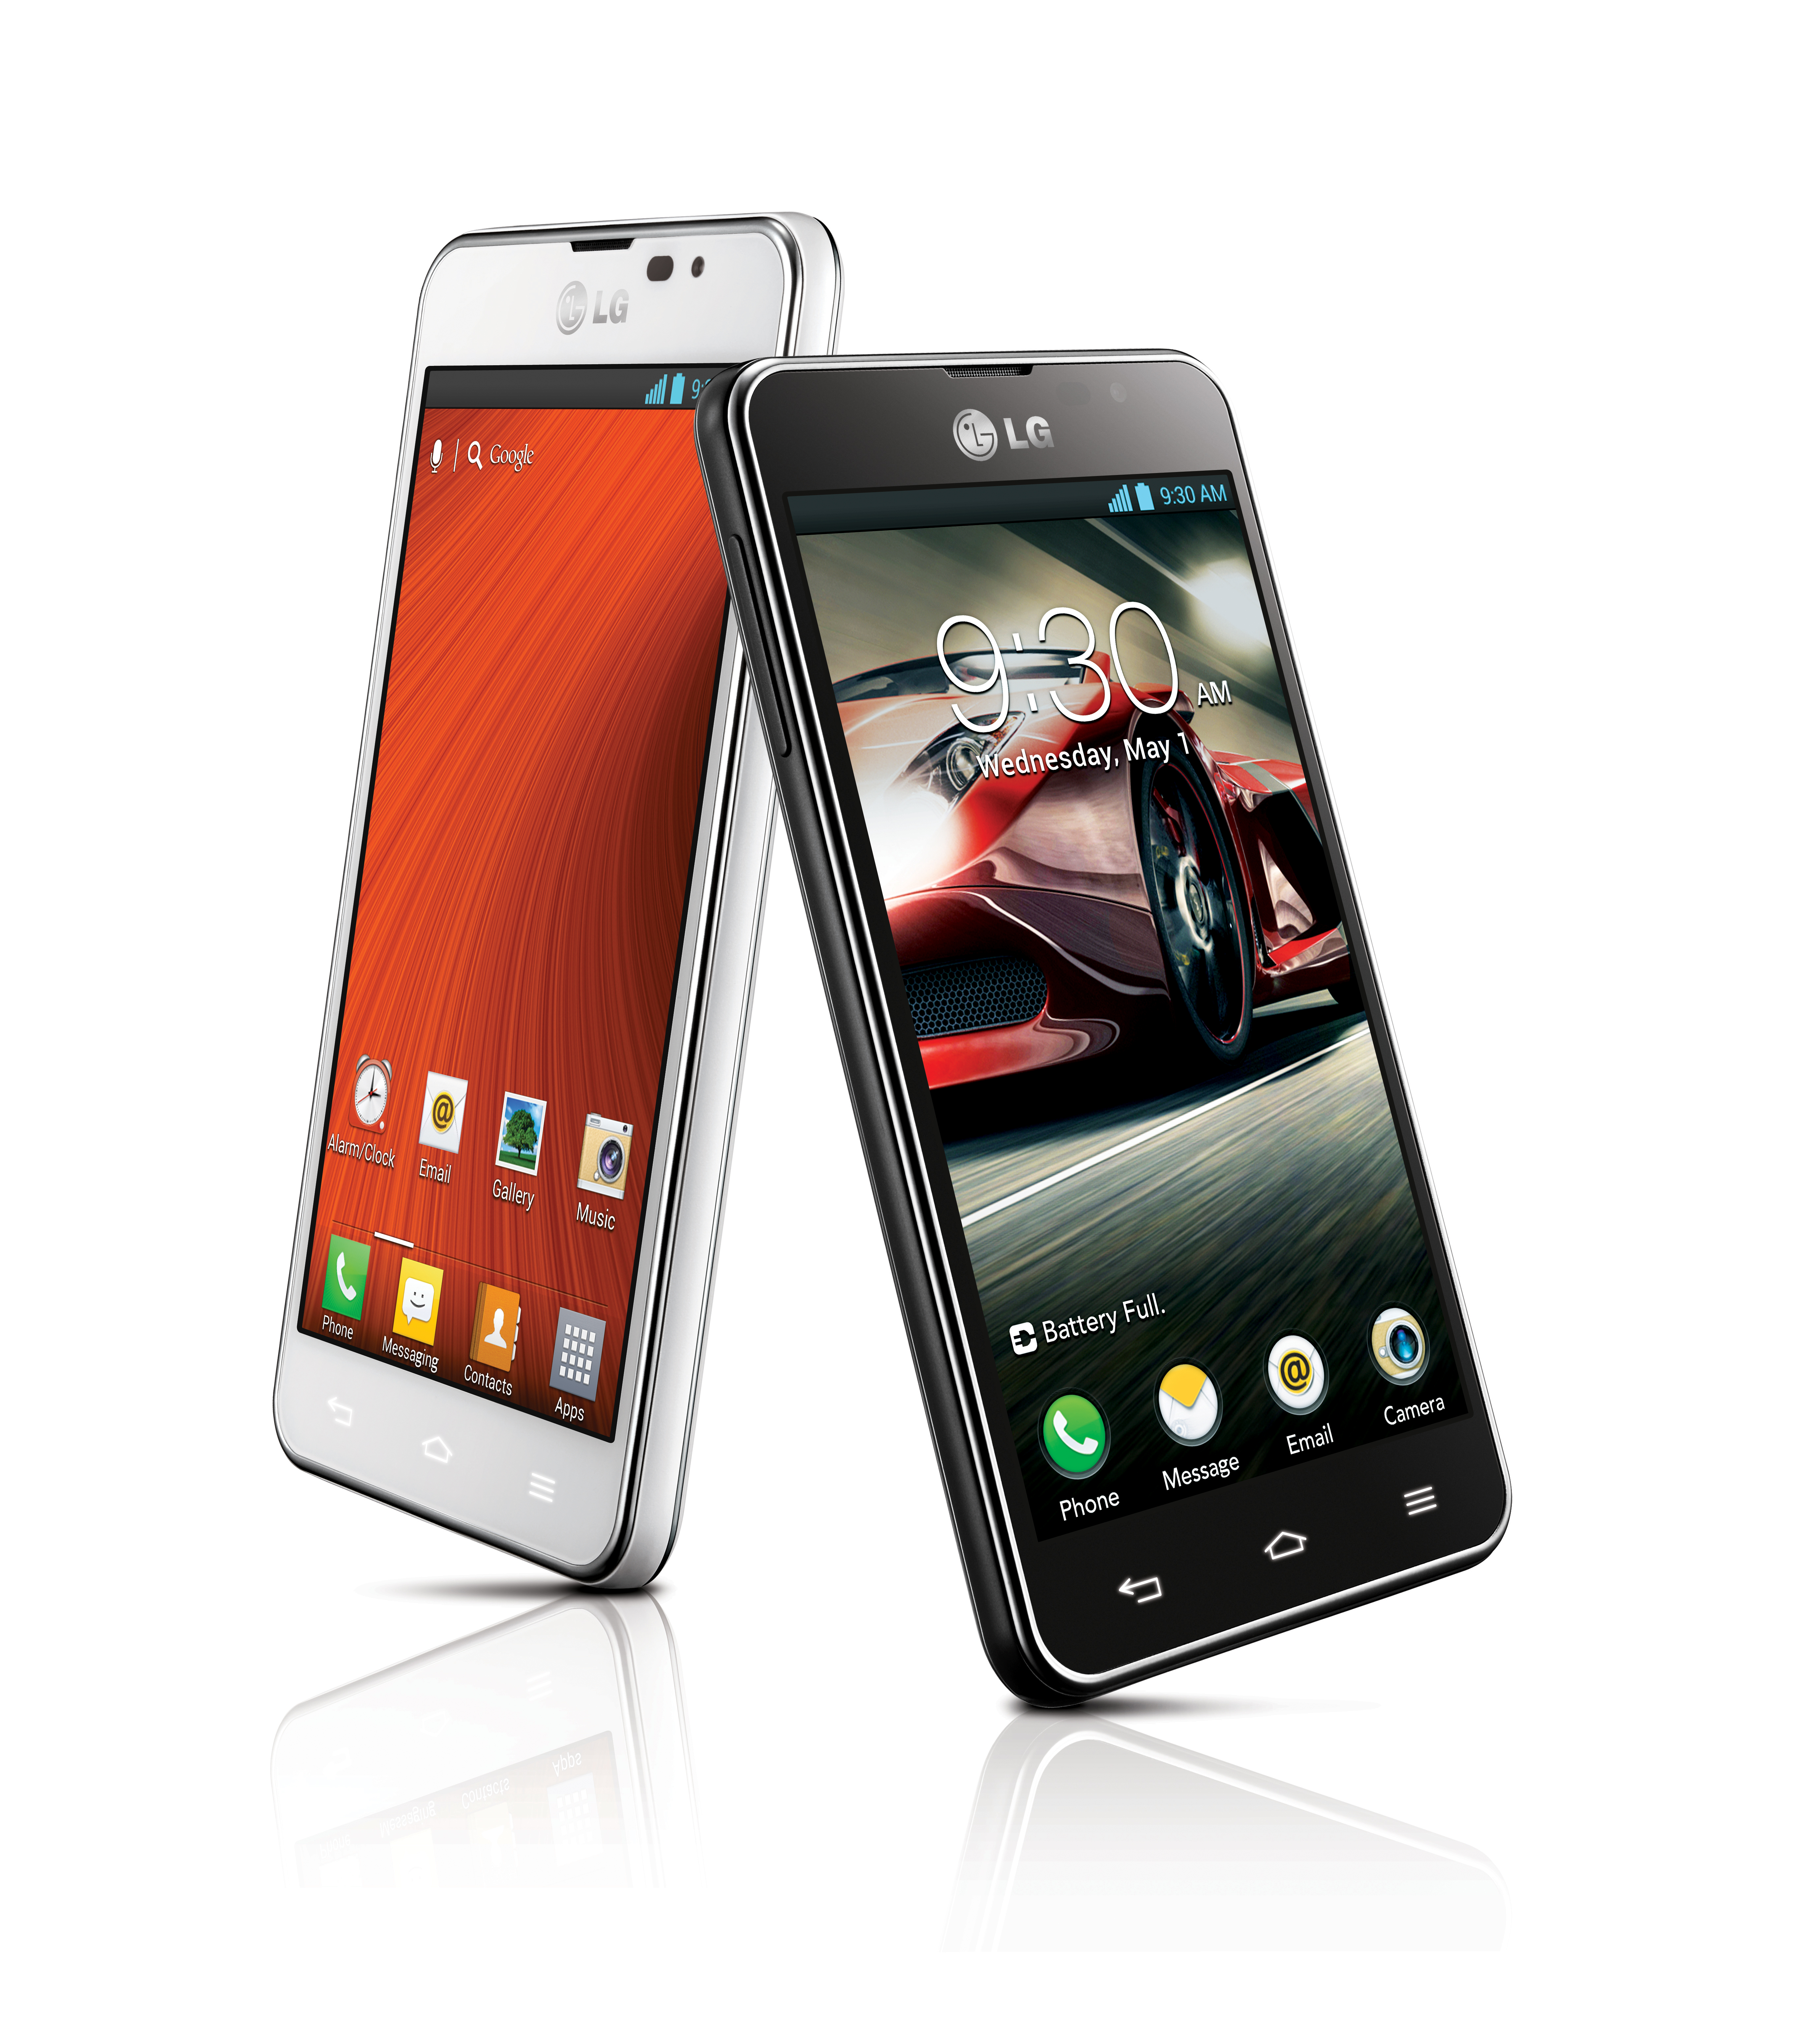 Side views of the LG Optimus F7 in white and LG Optimus F5 in black.